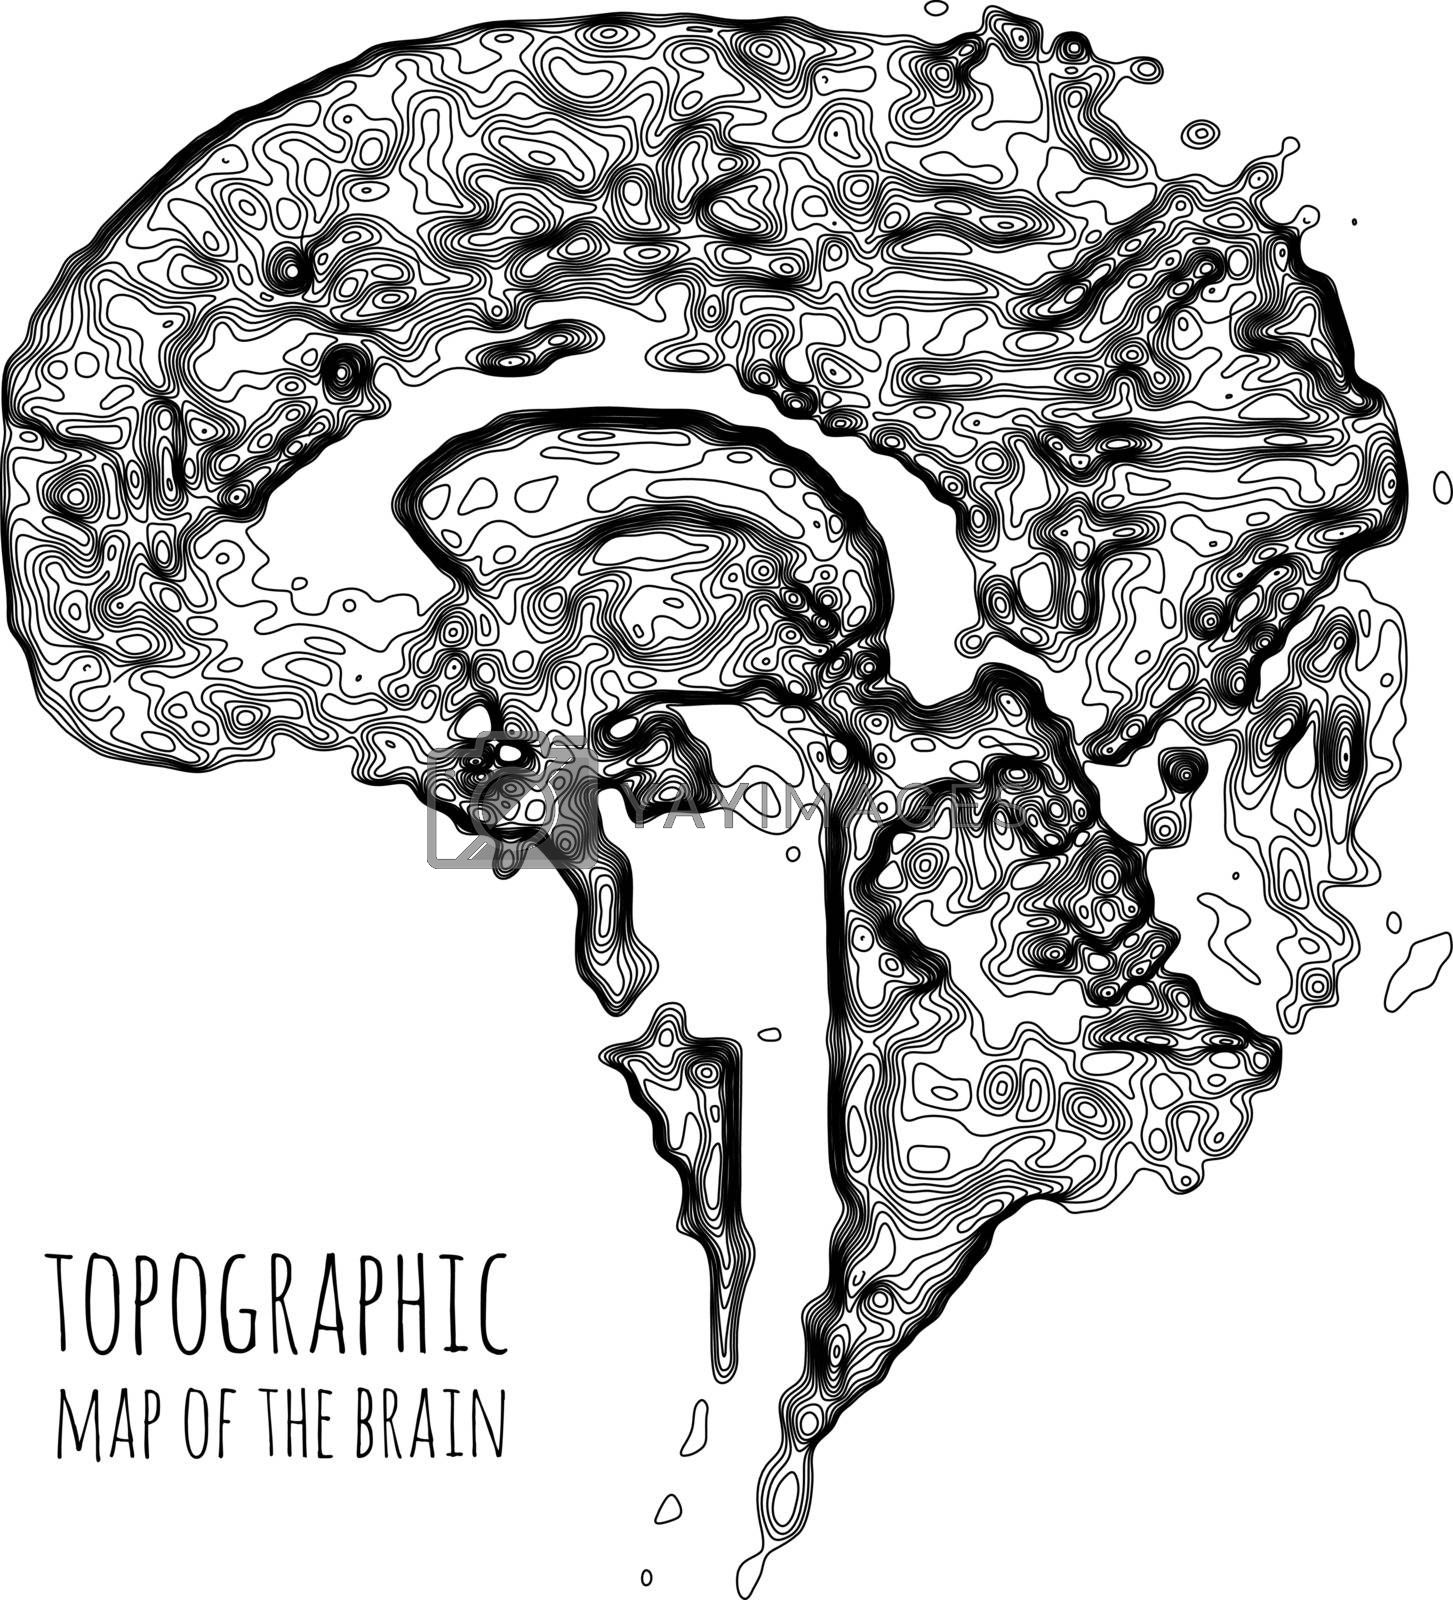 Royalty free image of The brain in the form of a topographic map. The concept of modern technology, data transfer between neurons. by sermax55